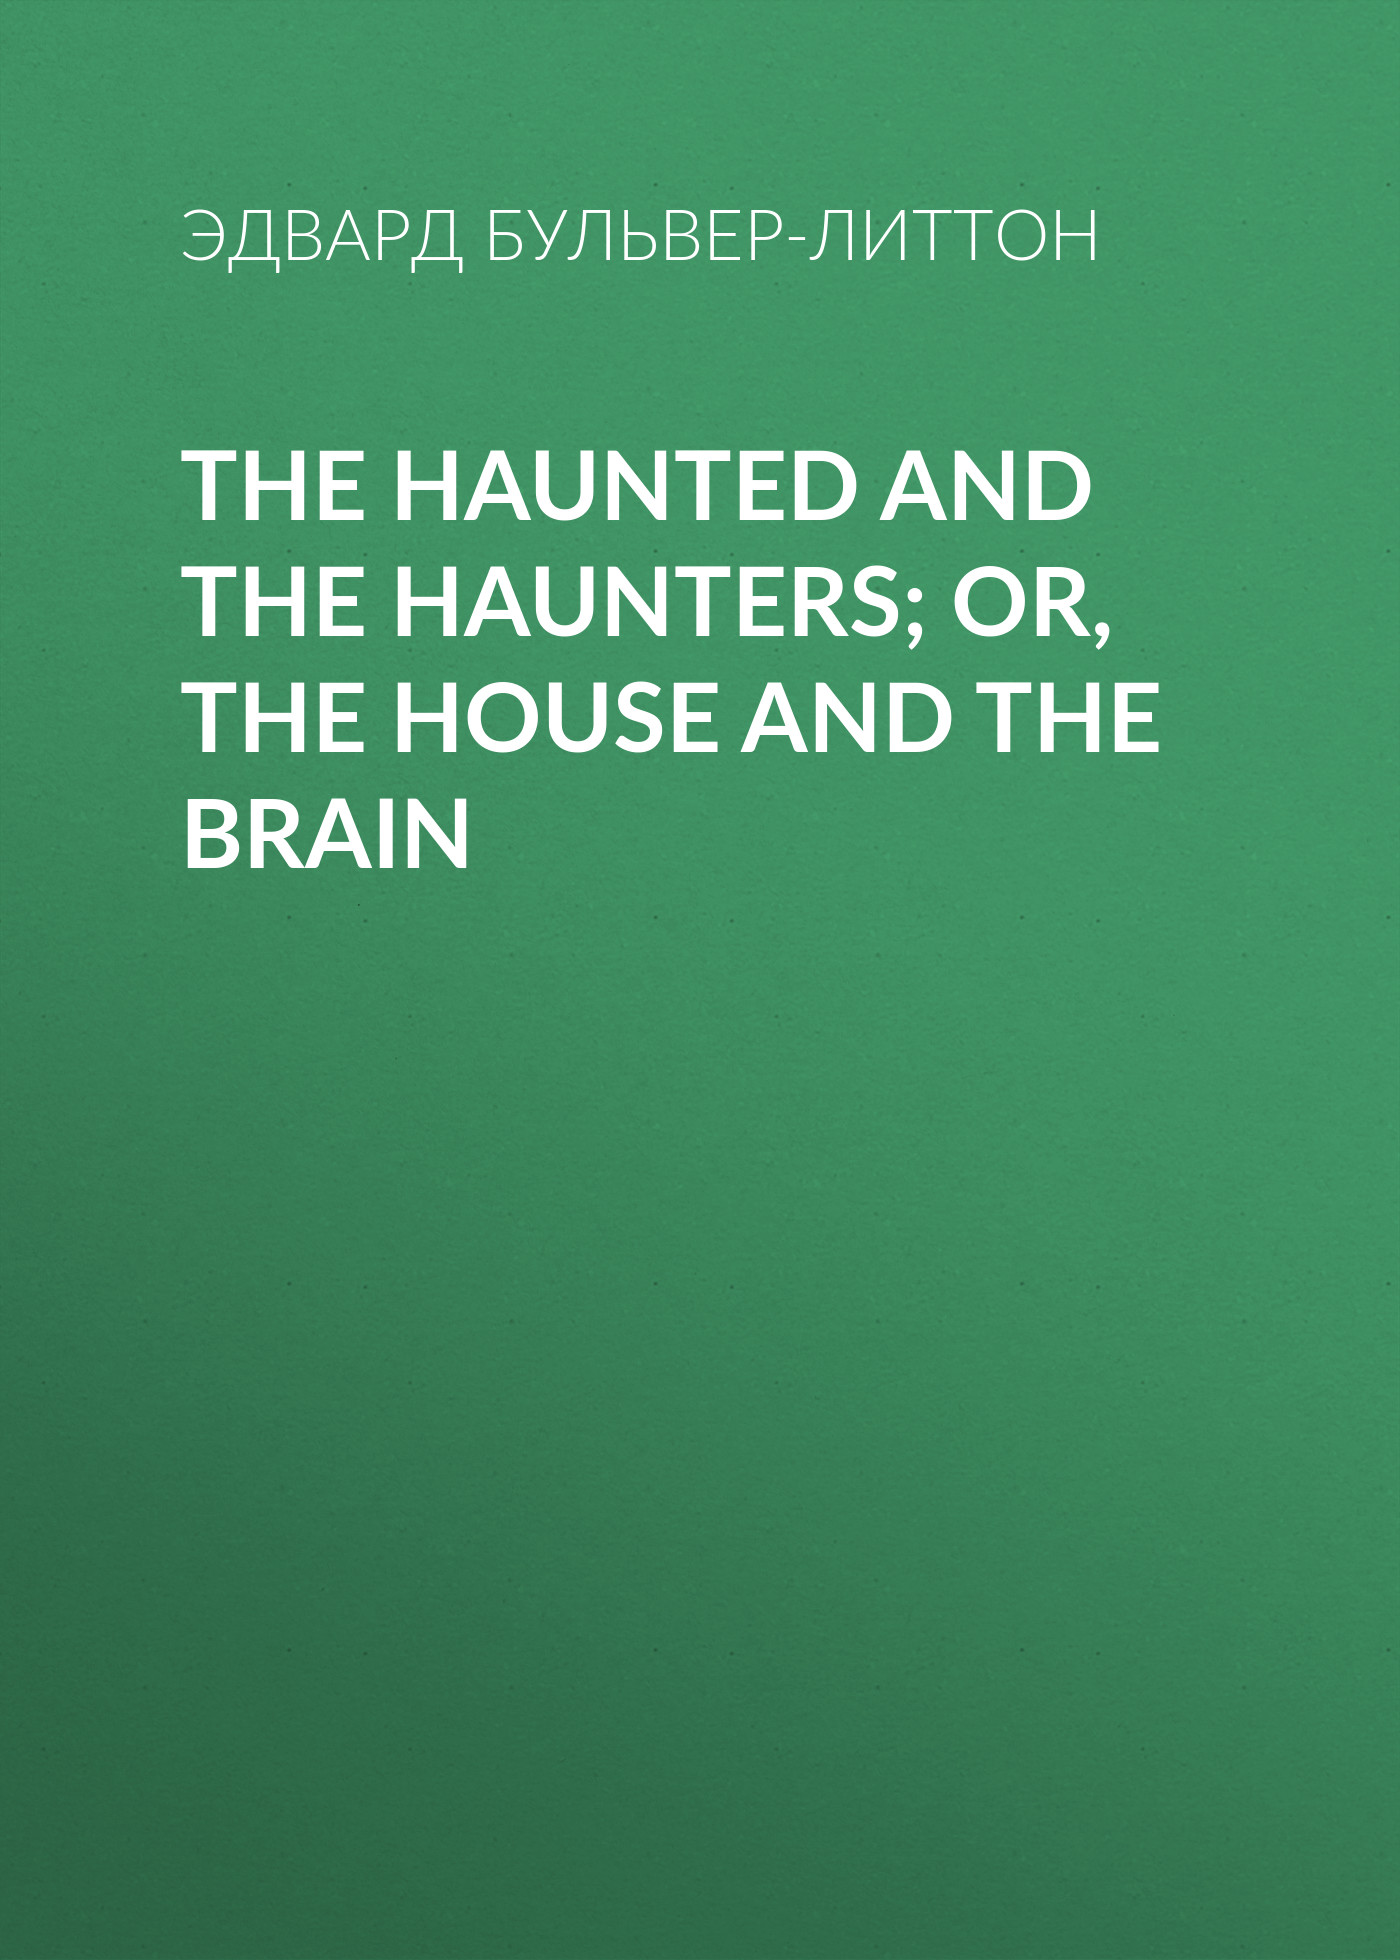 Эдвард Бульвер-Литтон The Haunted and the Haunters; Or, The House and the Brain haunted